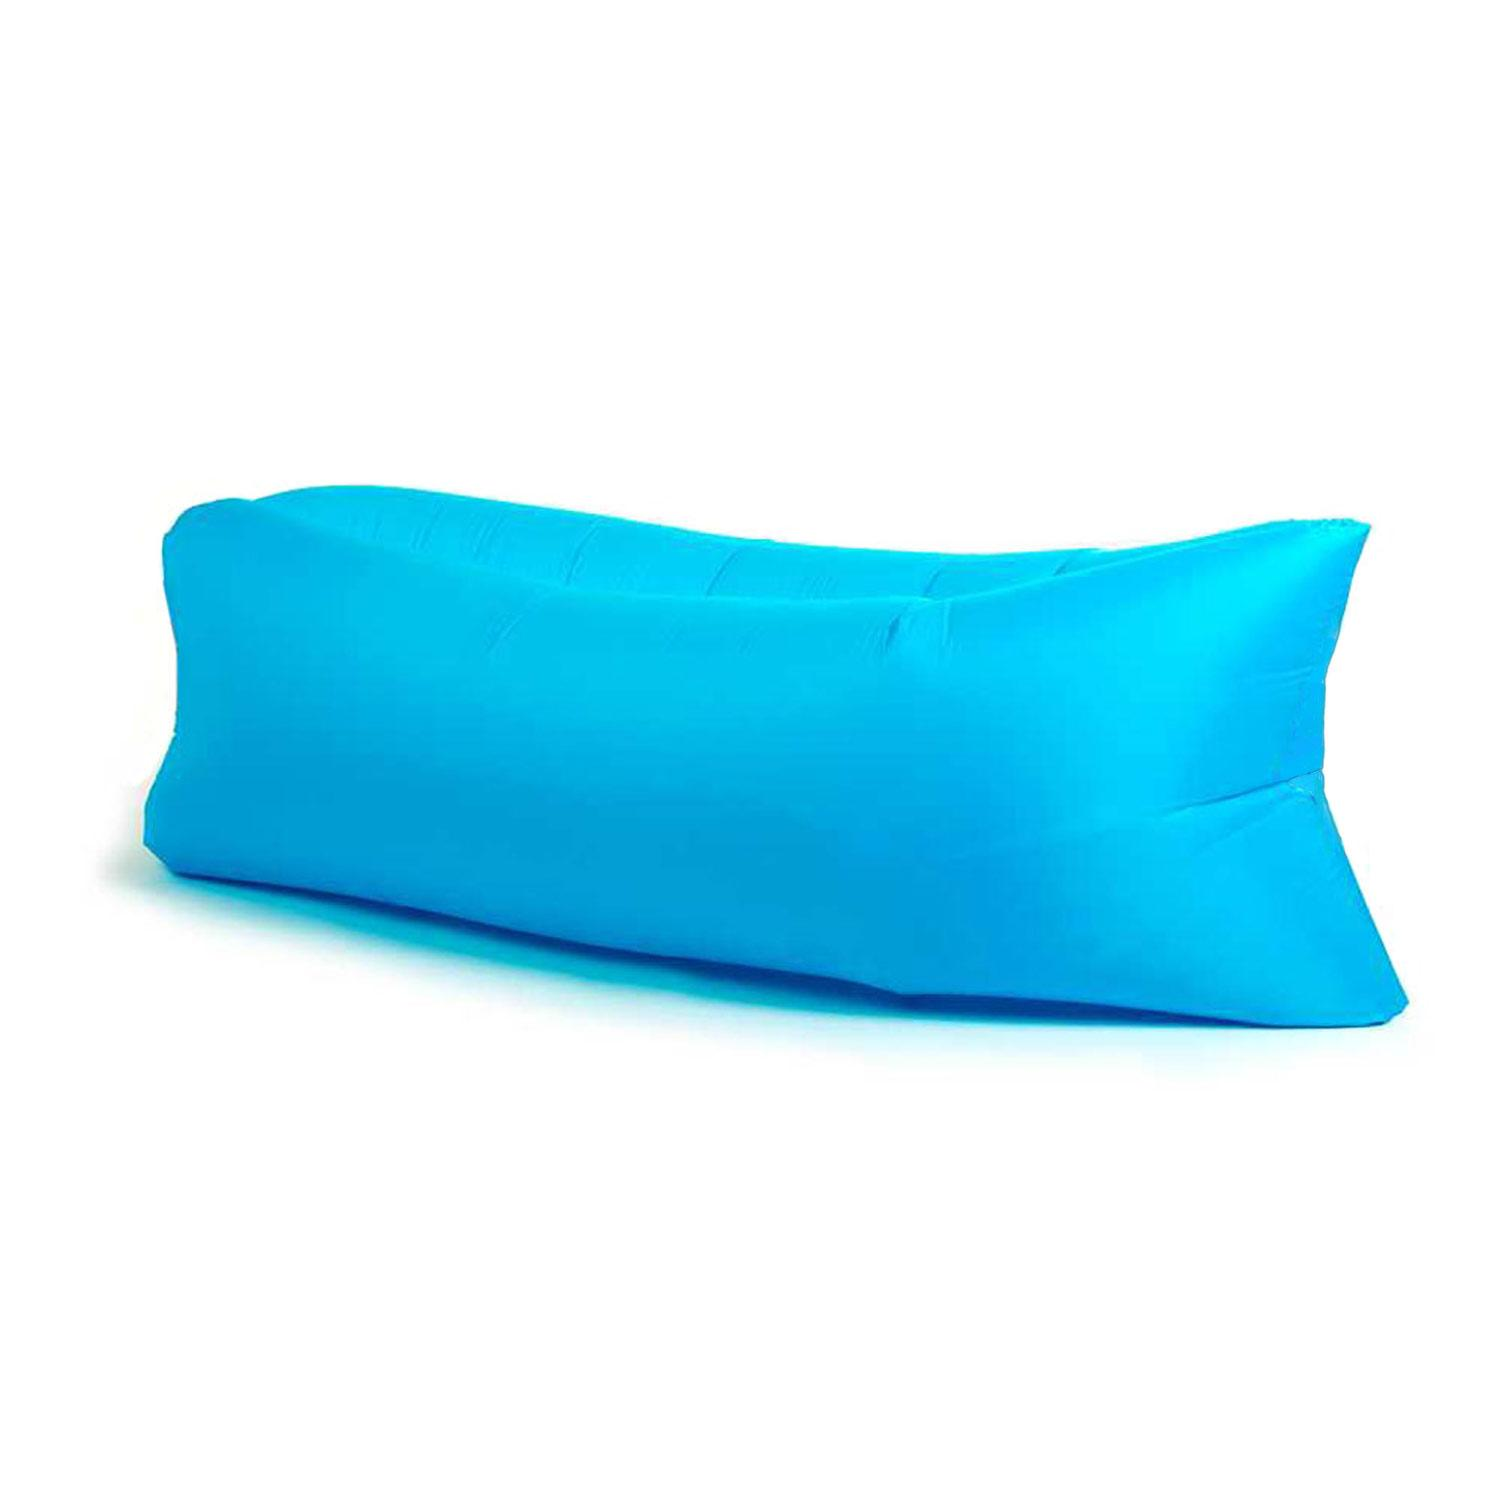 Anywhere Inflatable Lounger Indoor & Outdoor - Blue